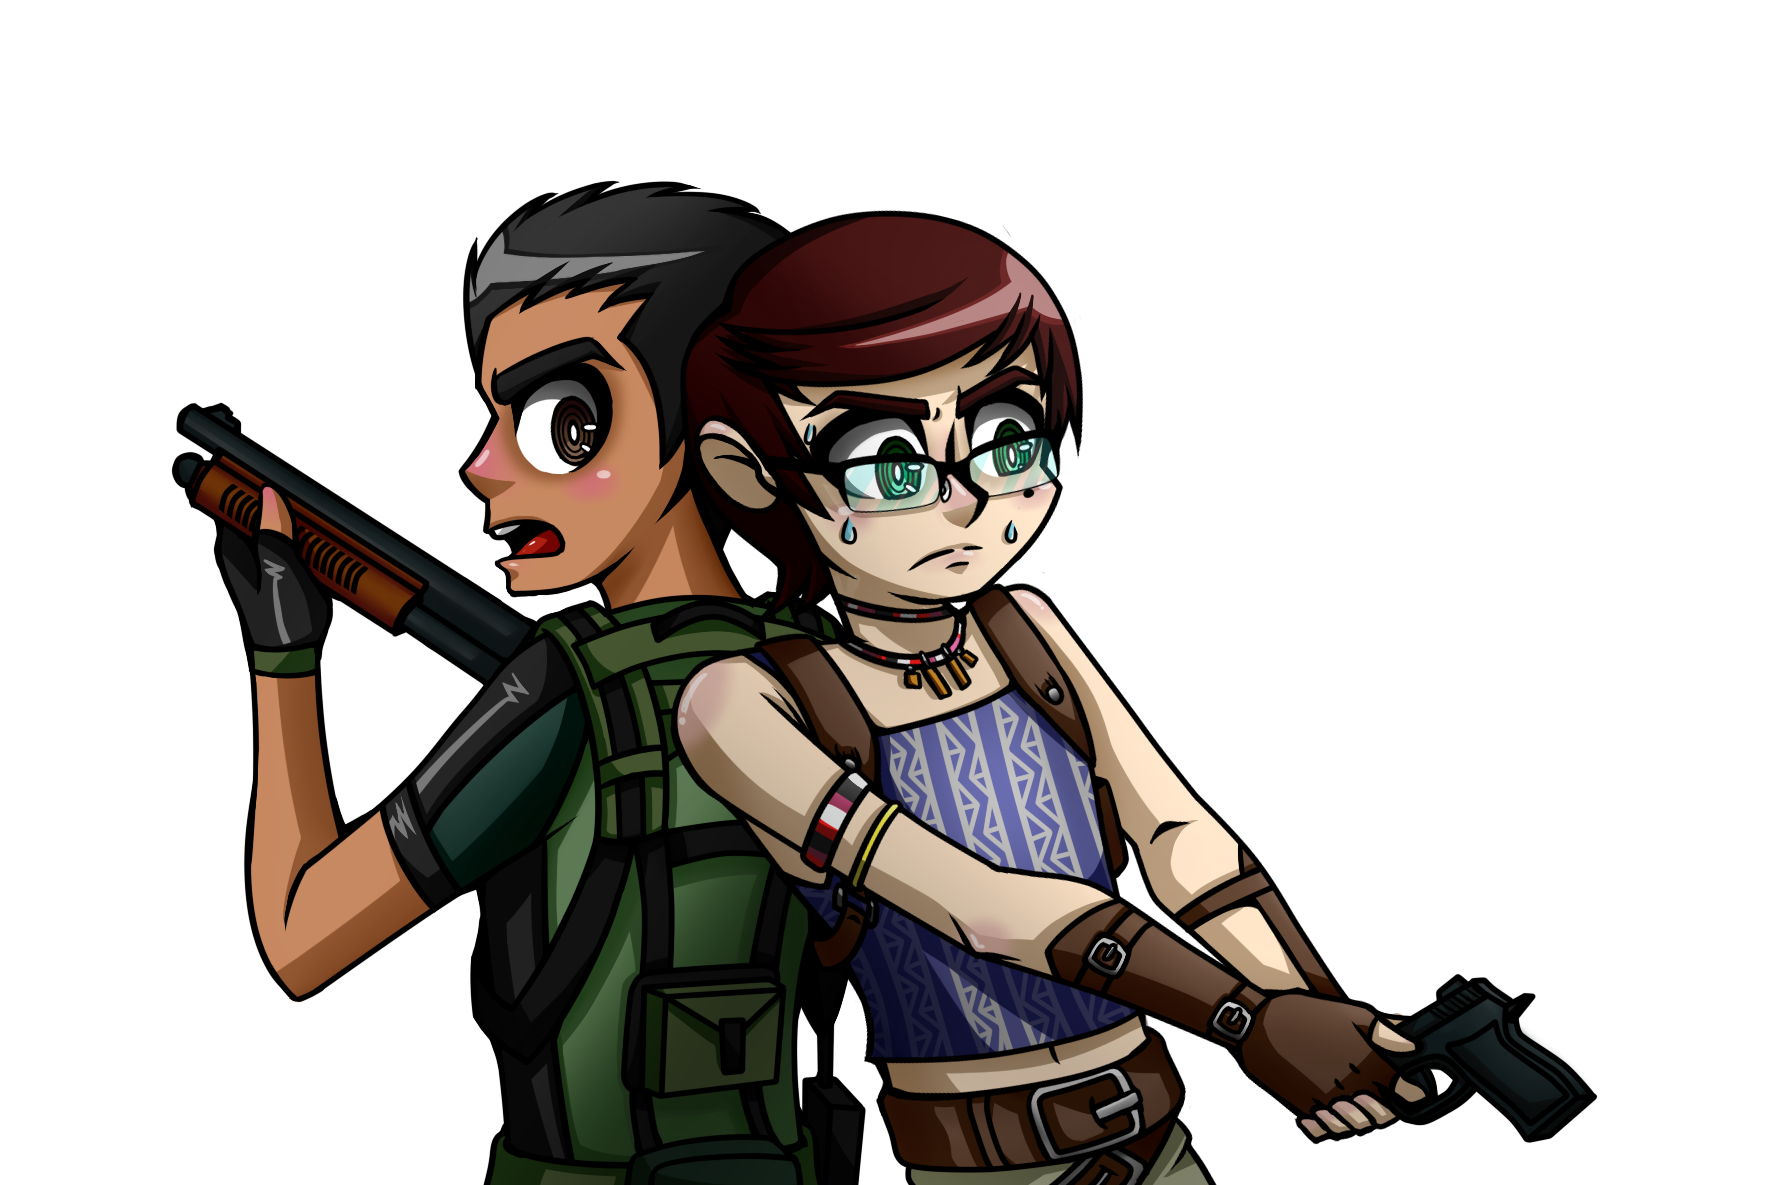 Commission - Leinim - Resident Evil 5 thing